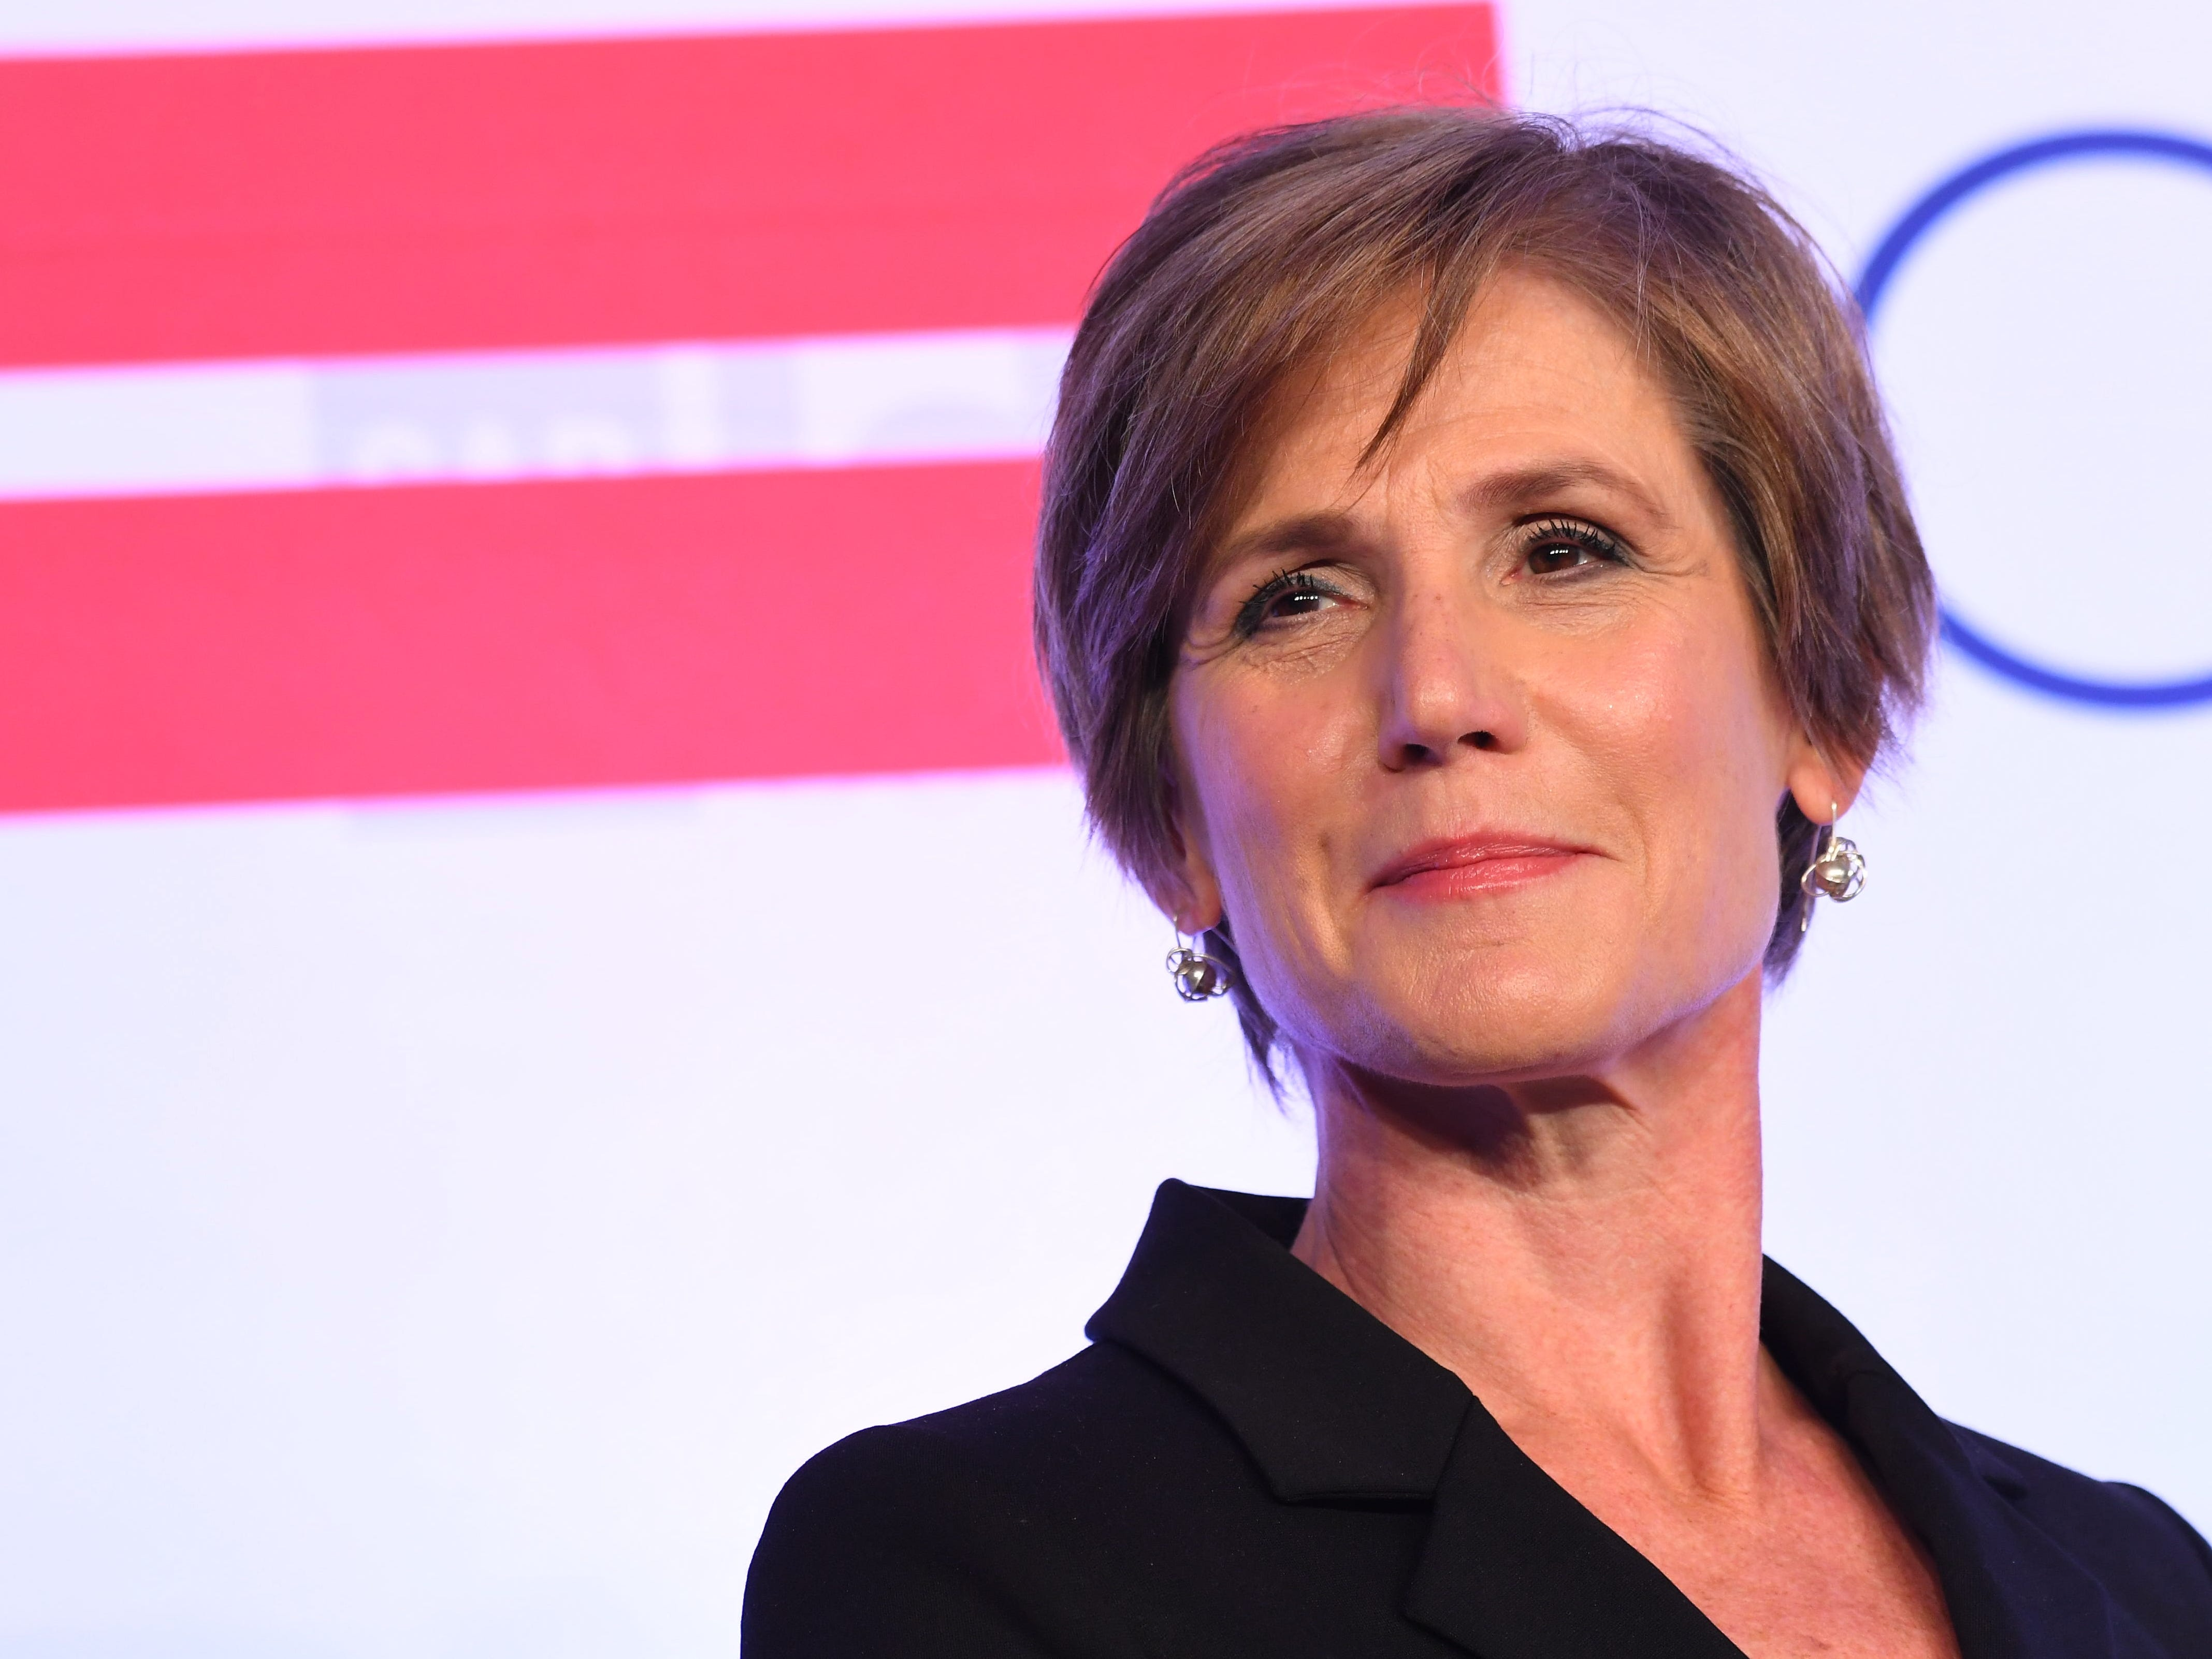 5/15/18 10:10:21 AM -- Washington, DC  -- Sally Yates, former acting U.S. Attorney General, during a session of the Center for American Progress (CAP) annual ideas conference. --    Photo by Jack Gruber, USA TODAY staff ORG XMIT:  JG 137178 Democrats-CAP 05/15/2018 [Via MerlinFTP Drop]